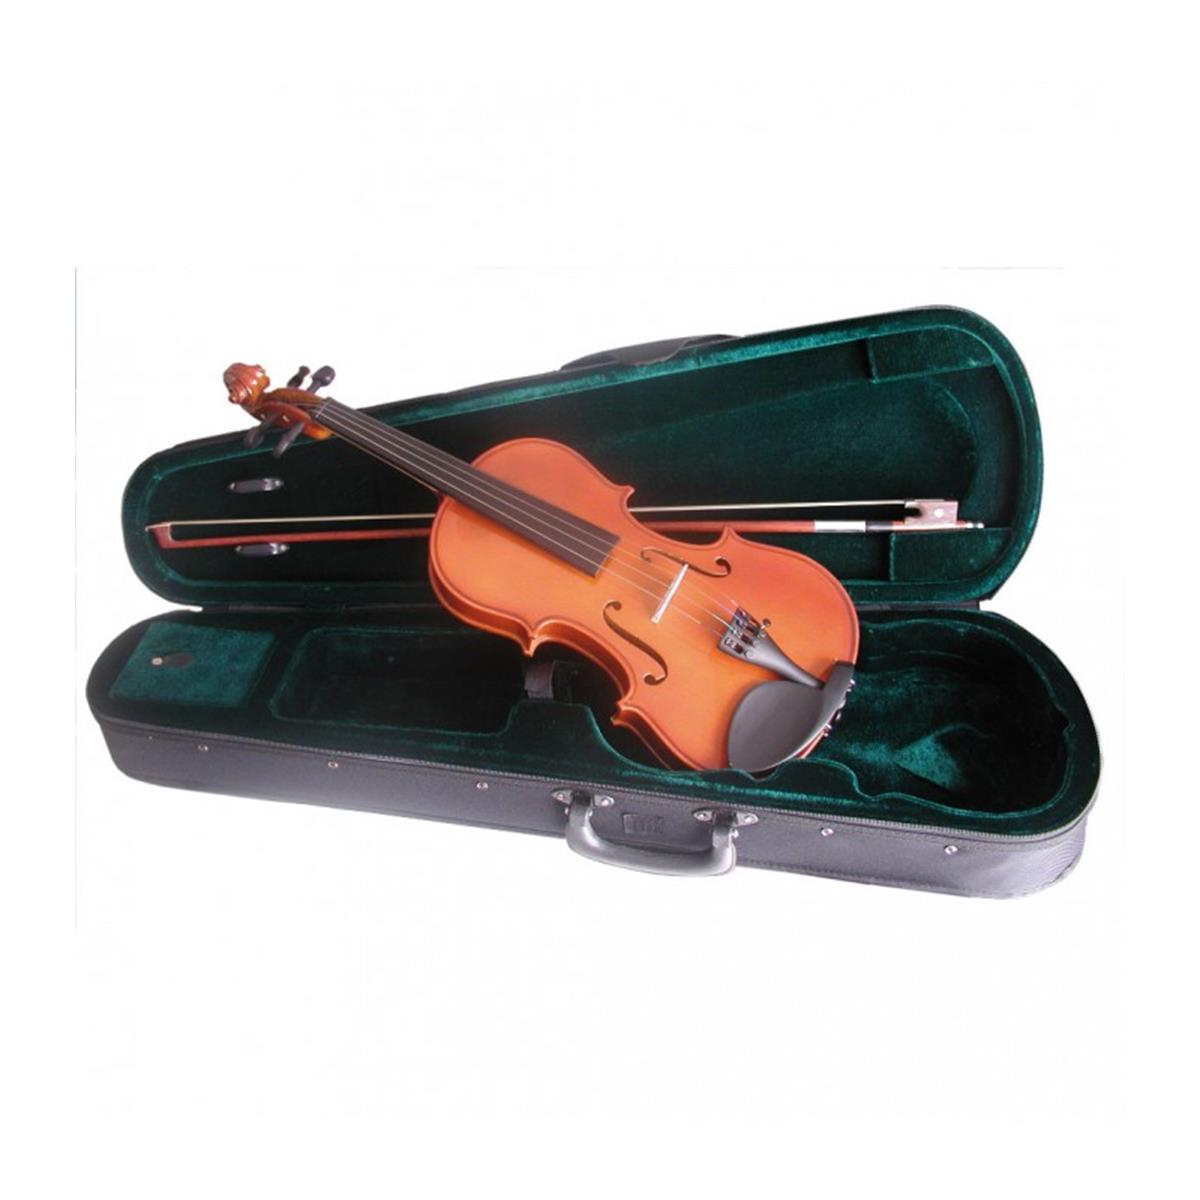 SOUNDSATION-YV141-VIOLINO-3-4-CON-FODERO-E-ACCESSORI-sku-441